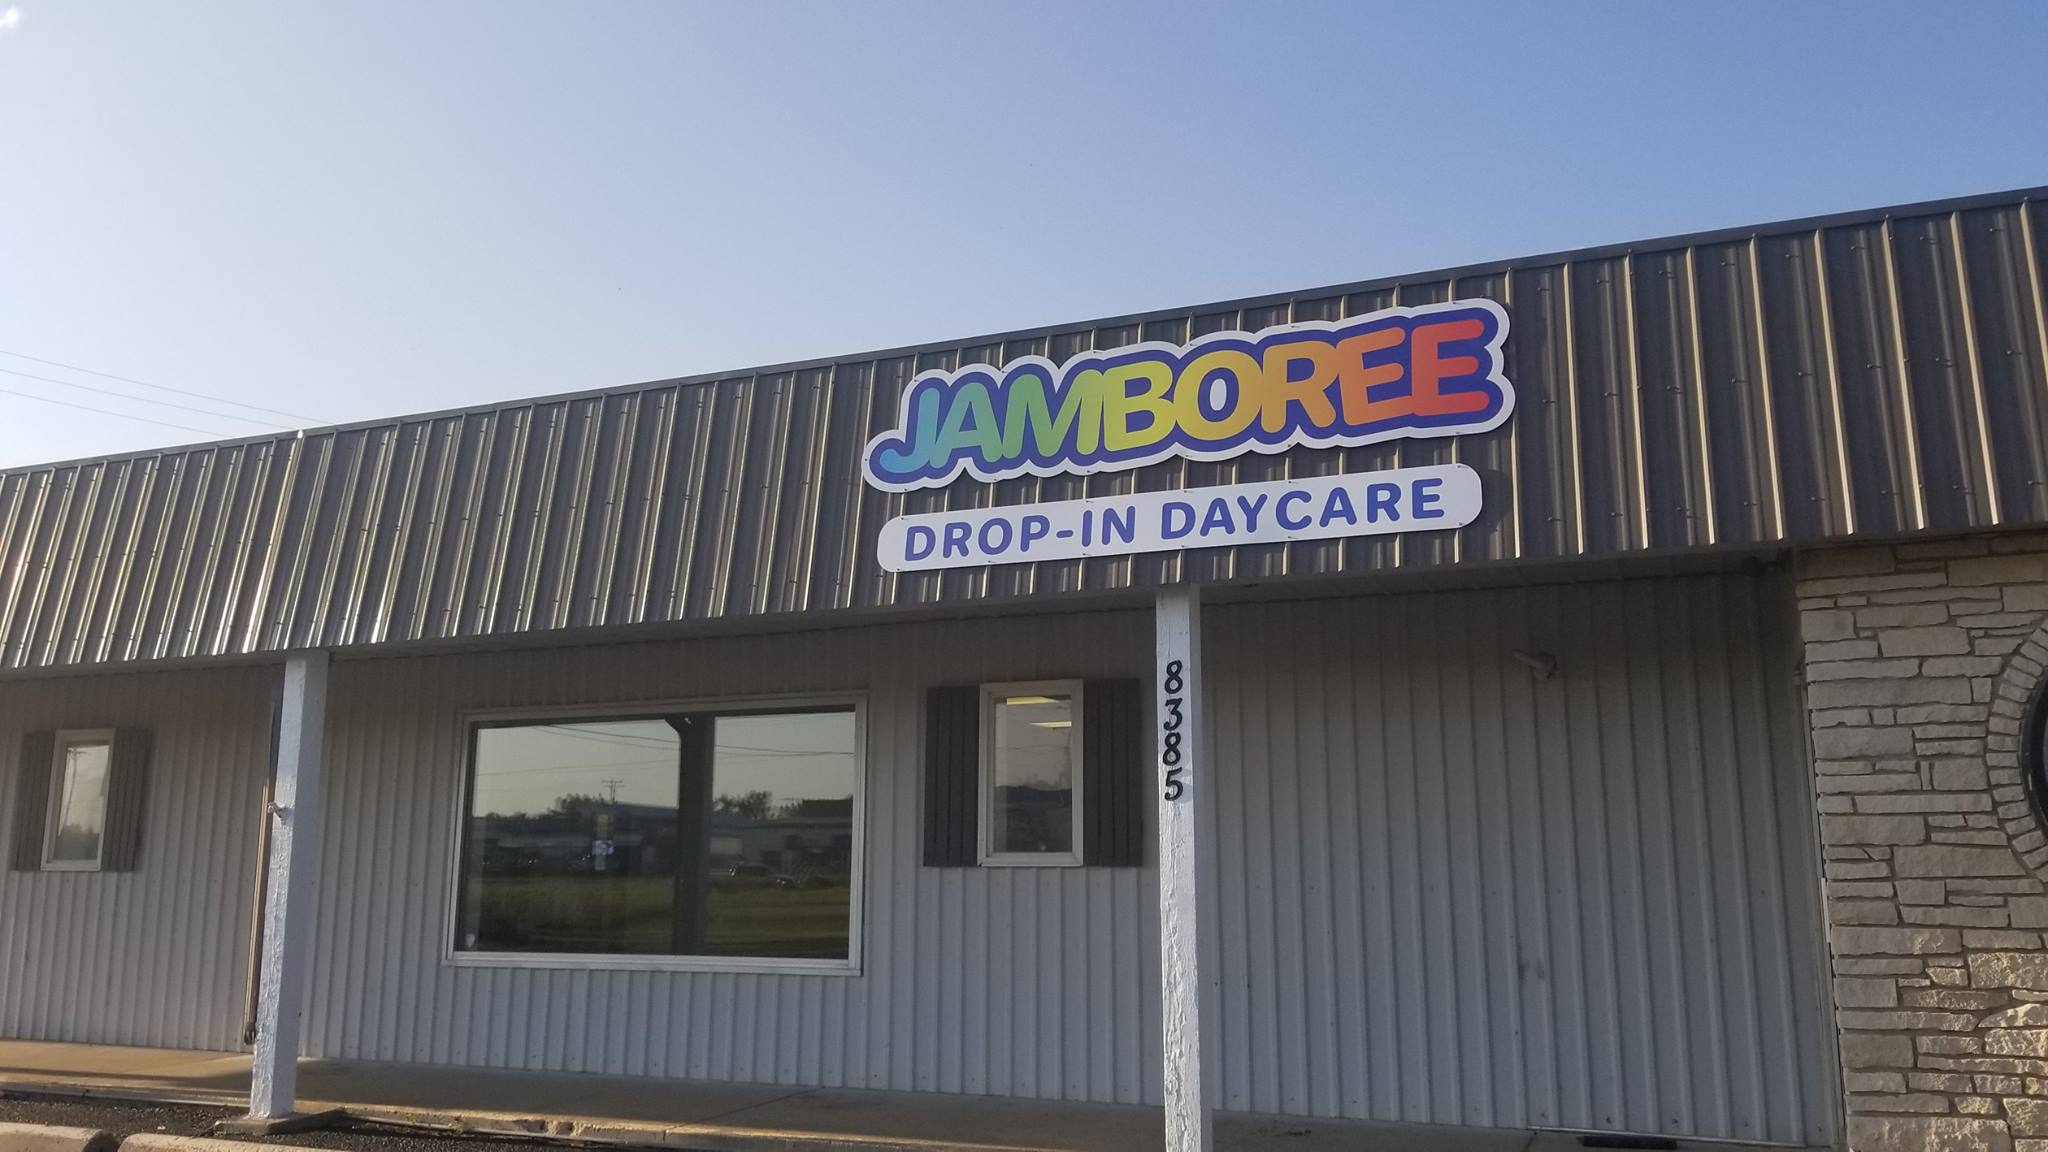 Jamboree Drop-In Daycare